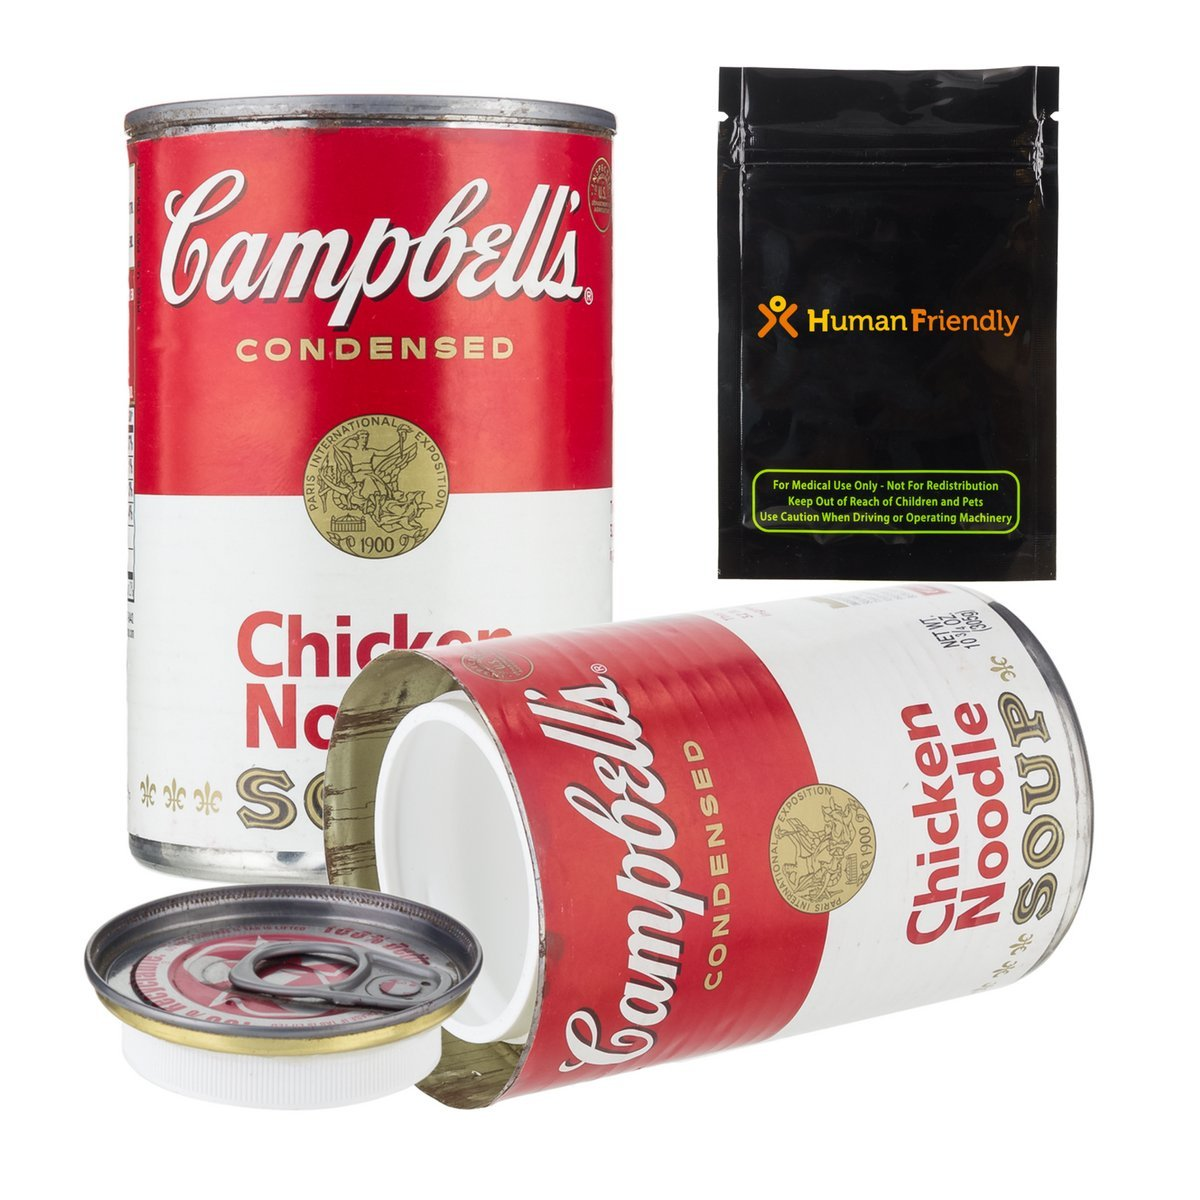 Campbells Soup Diversion Safe Stash Container Can 10oz w HumanFriendly Smell-Proof Bag